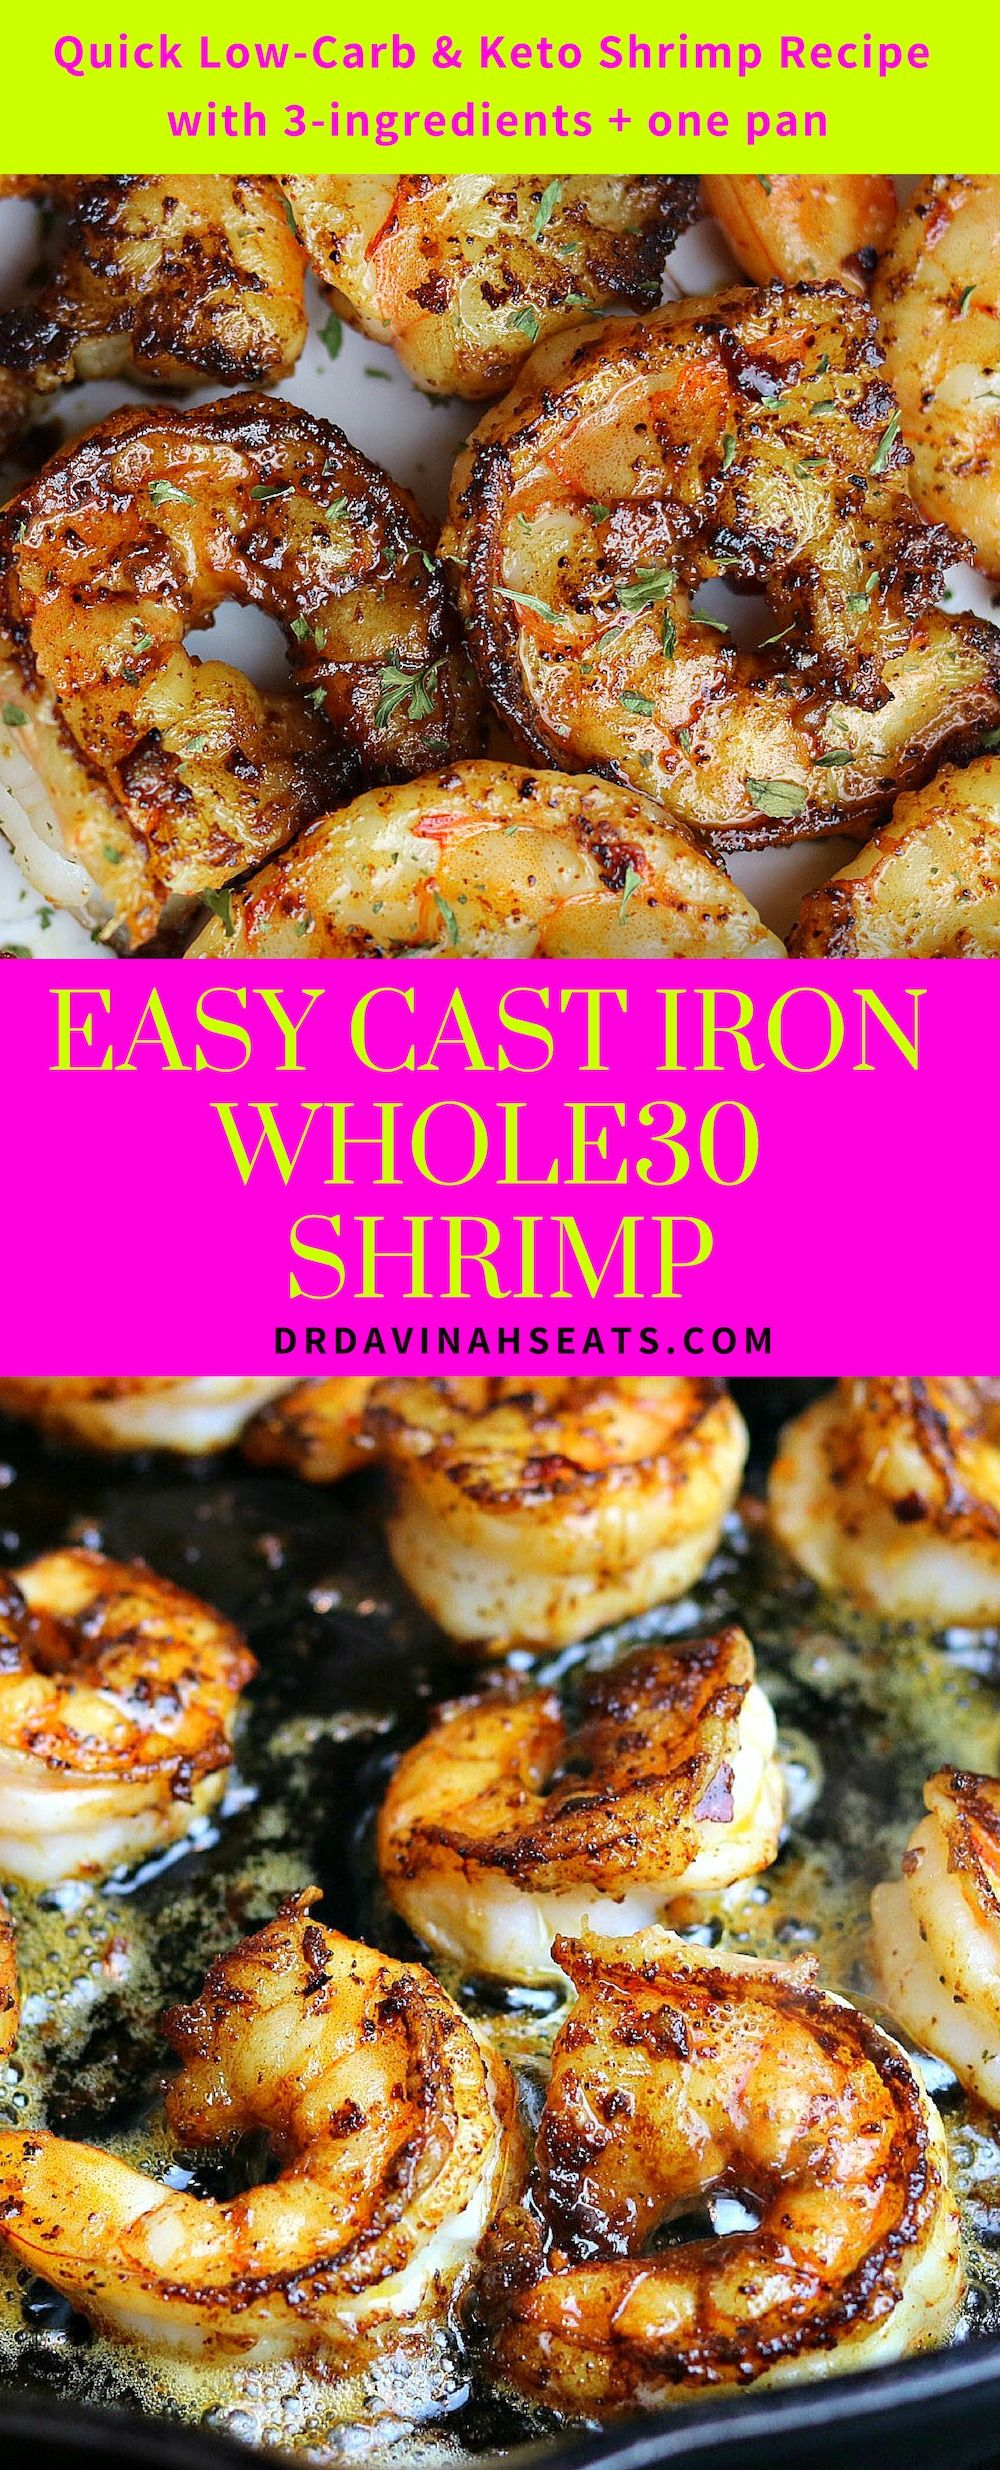 Photo of Easy Cast Iron Whole30 Shrimp | Dr. Davinah's Eats